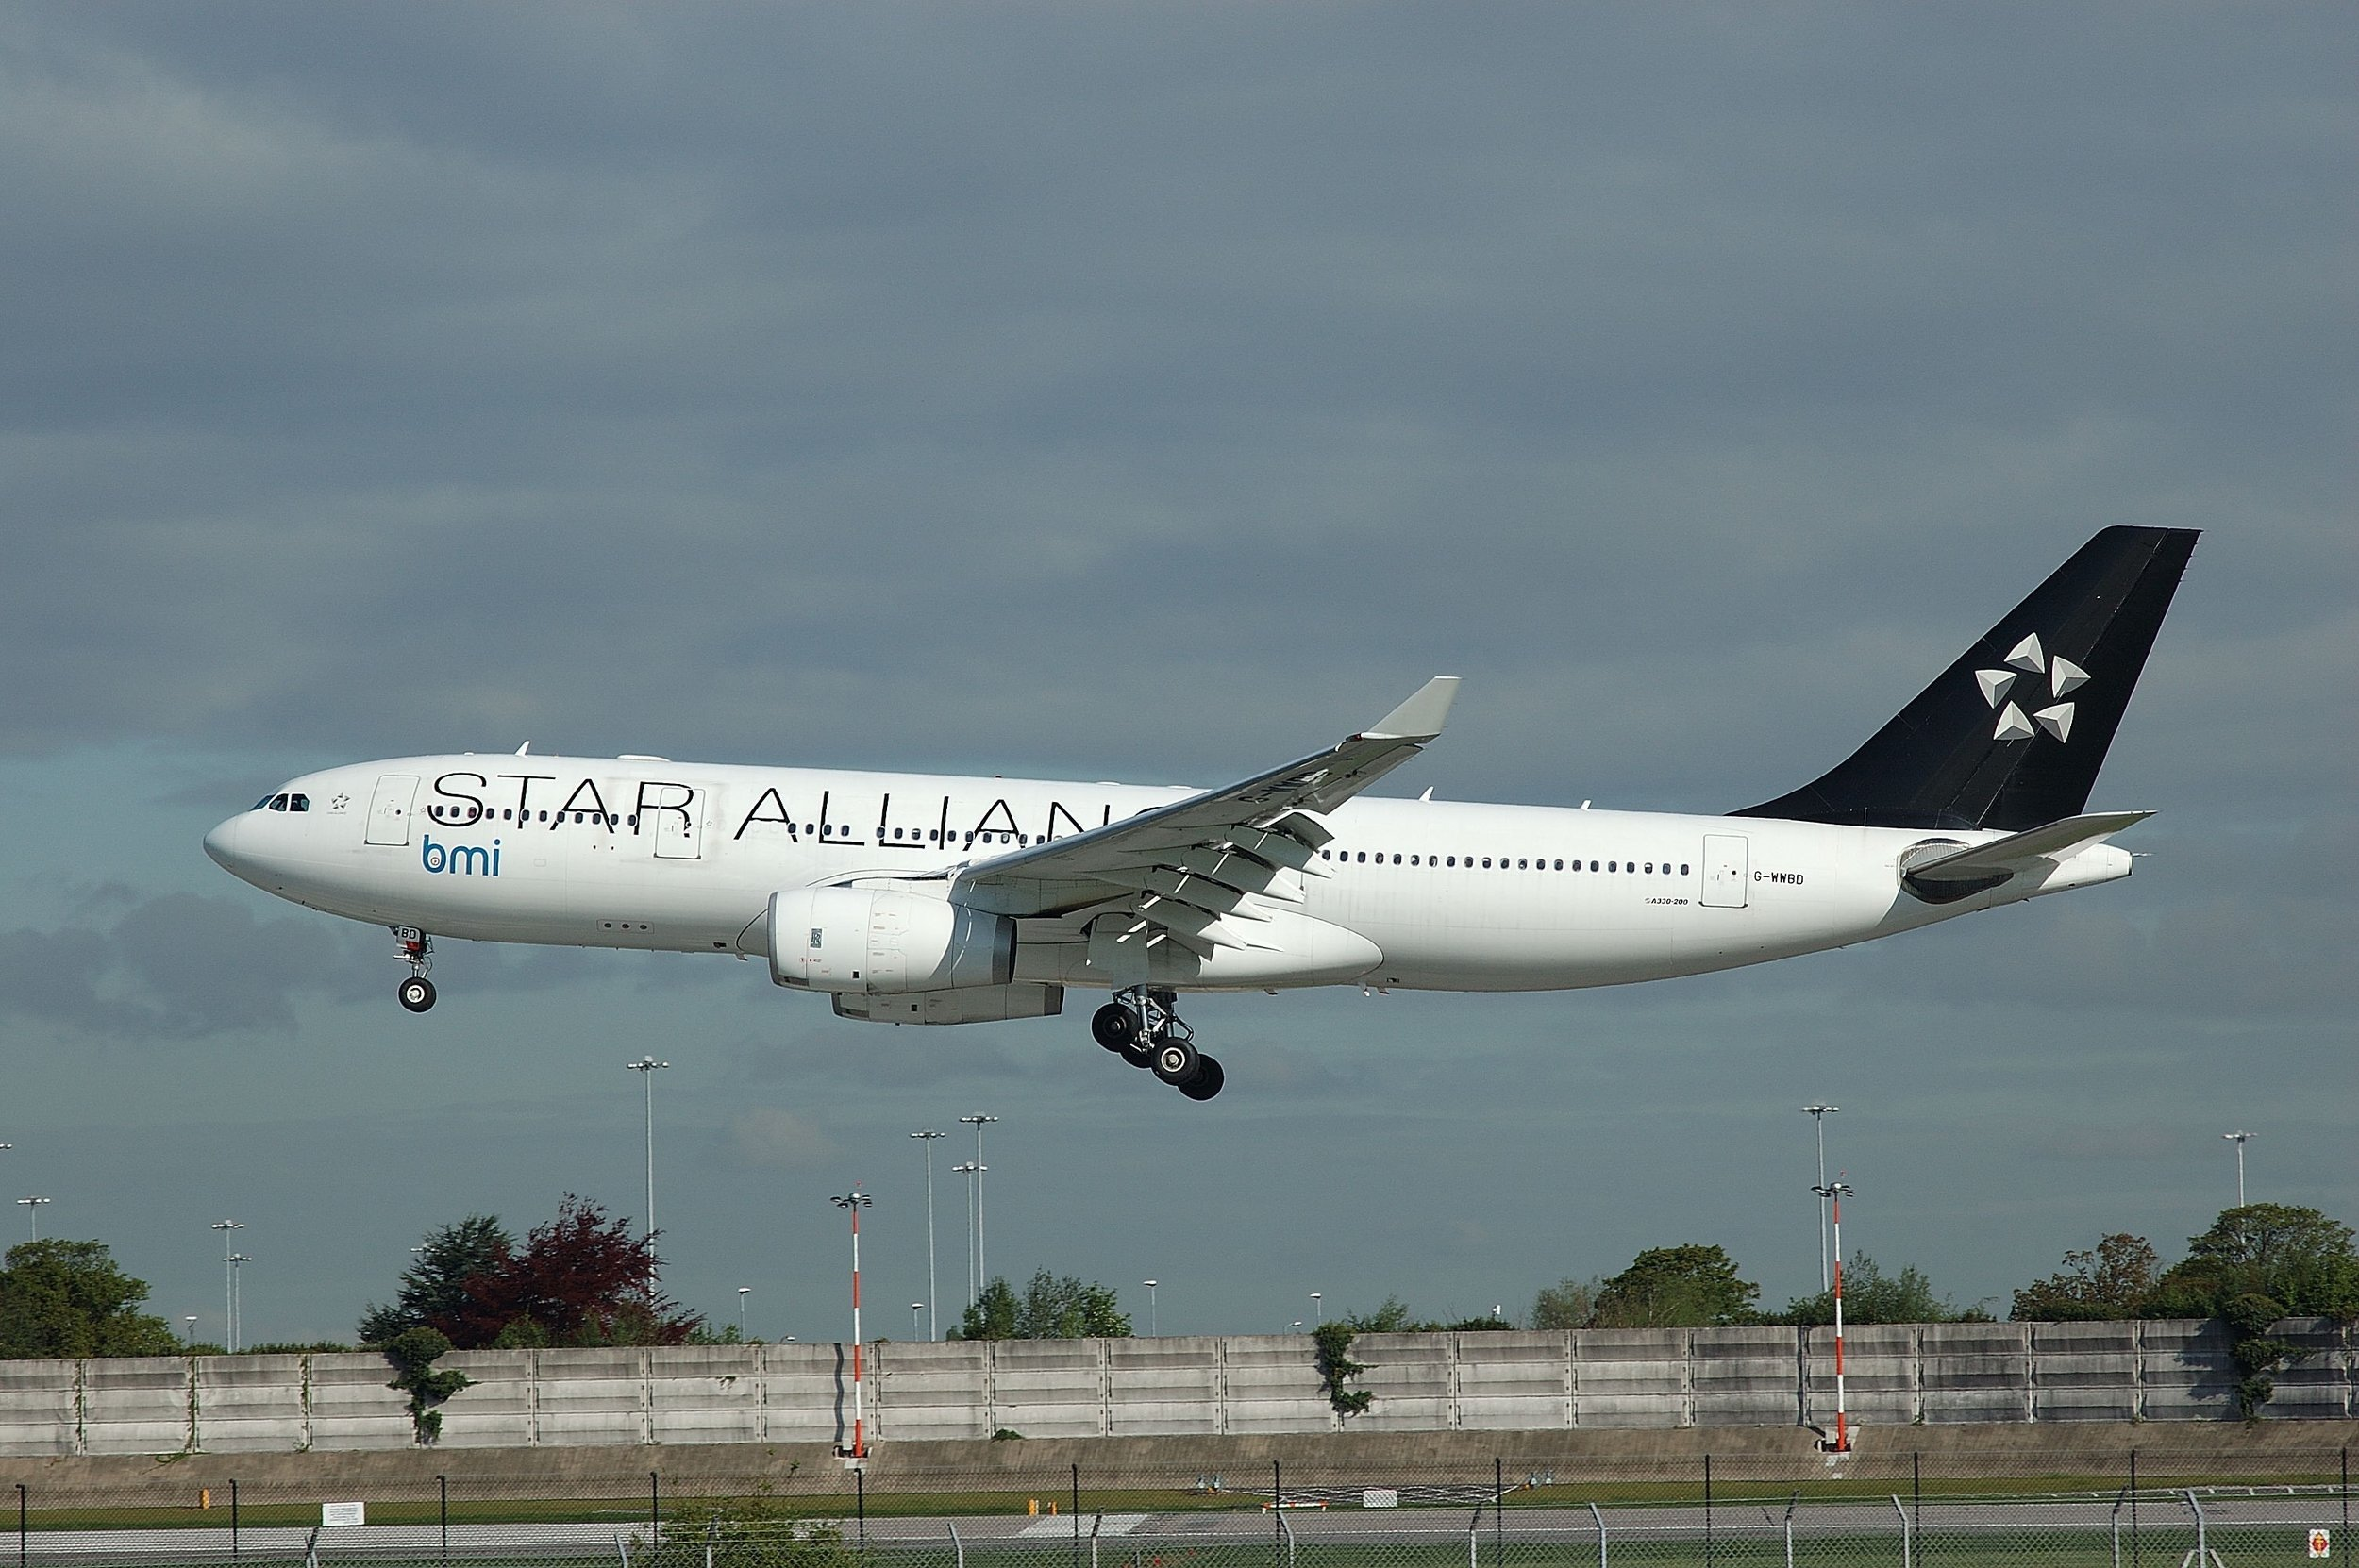 A great shot from Paul Rowland of bmi / Star Alliance A330-200 G-WWBD just prior to touch down on Runway 23 Right on 9th May 2005.